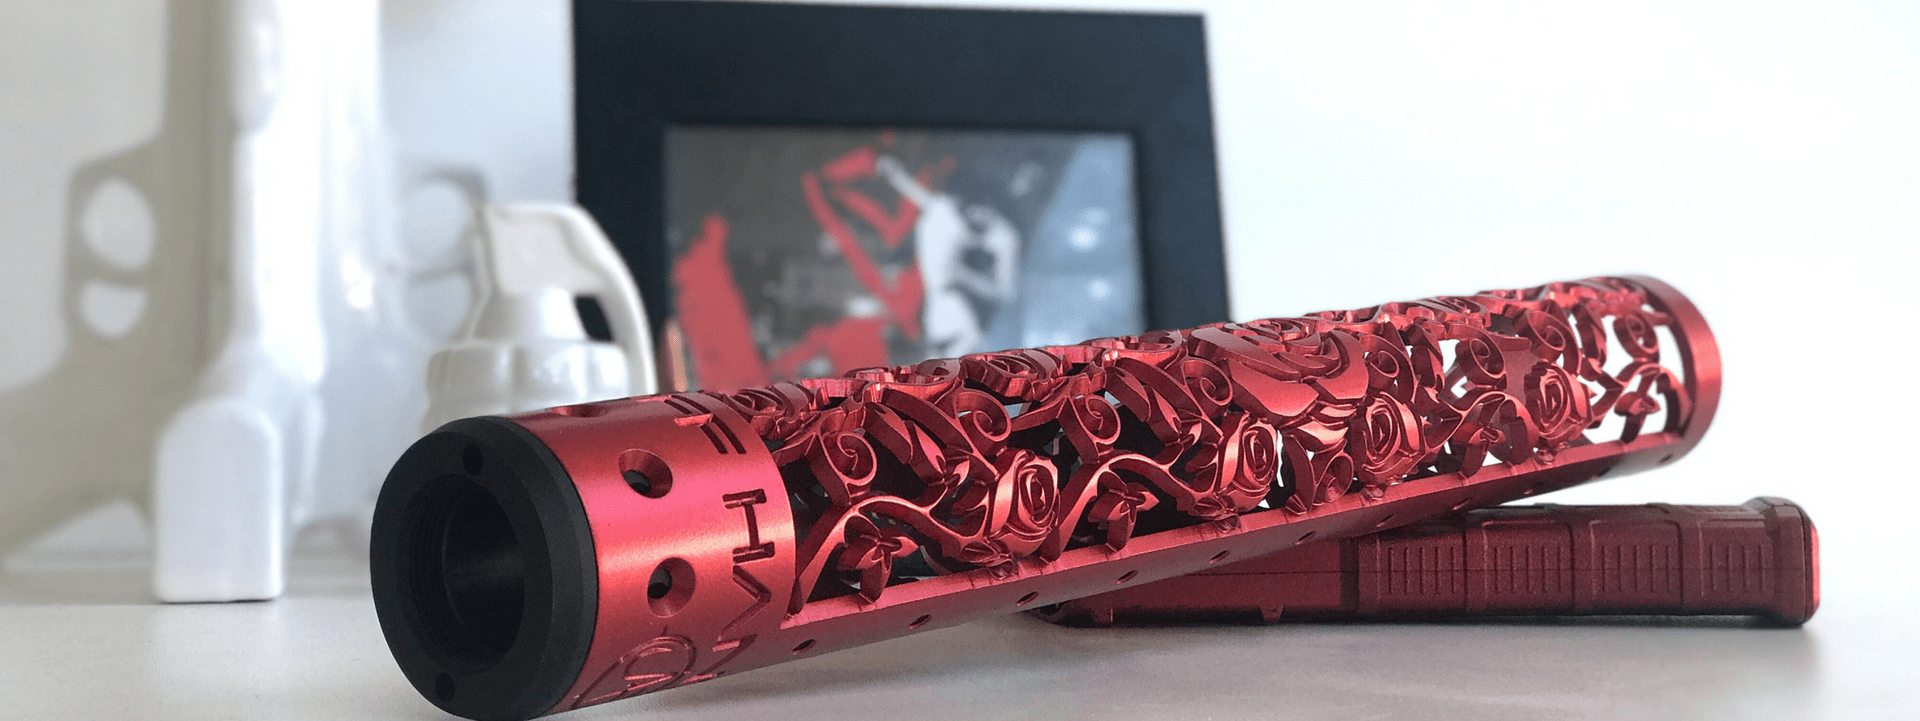 Rose Vine Iron Man Red Hand Guard